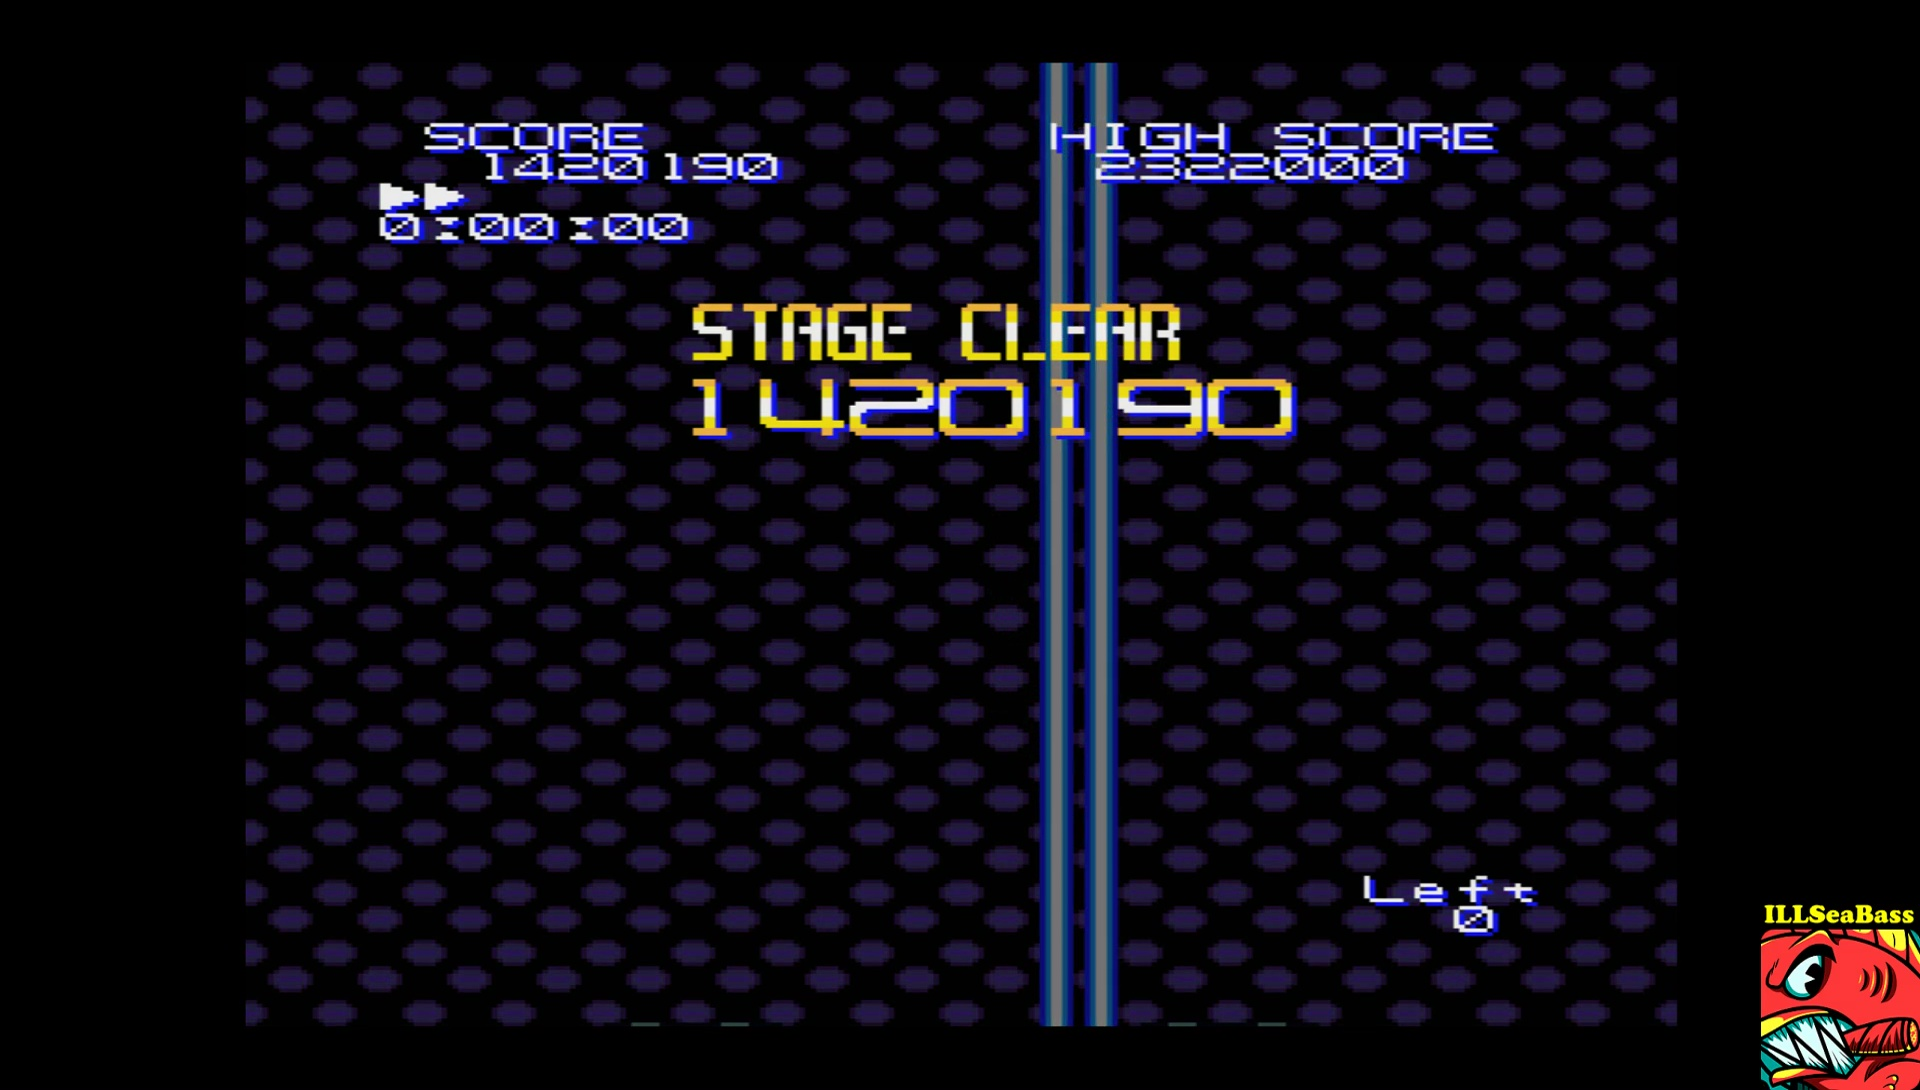 ILLSeaBass: Super Star Shooter: Version 1.00 [5 Minutes Game] (Sharp X68000 Emulated) 1,420,190 points on 2017-06-24 22:06:06